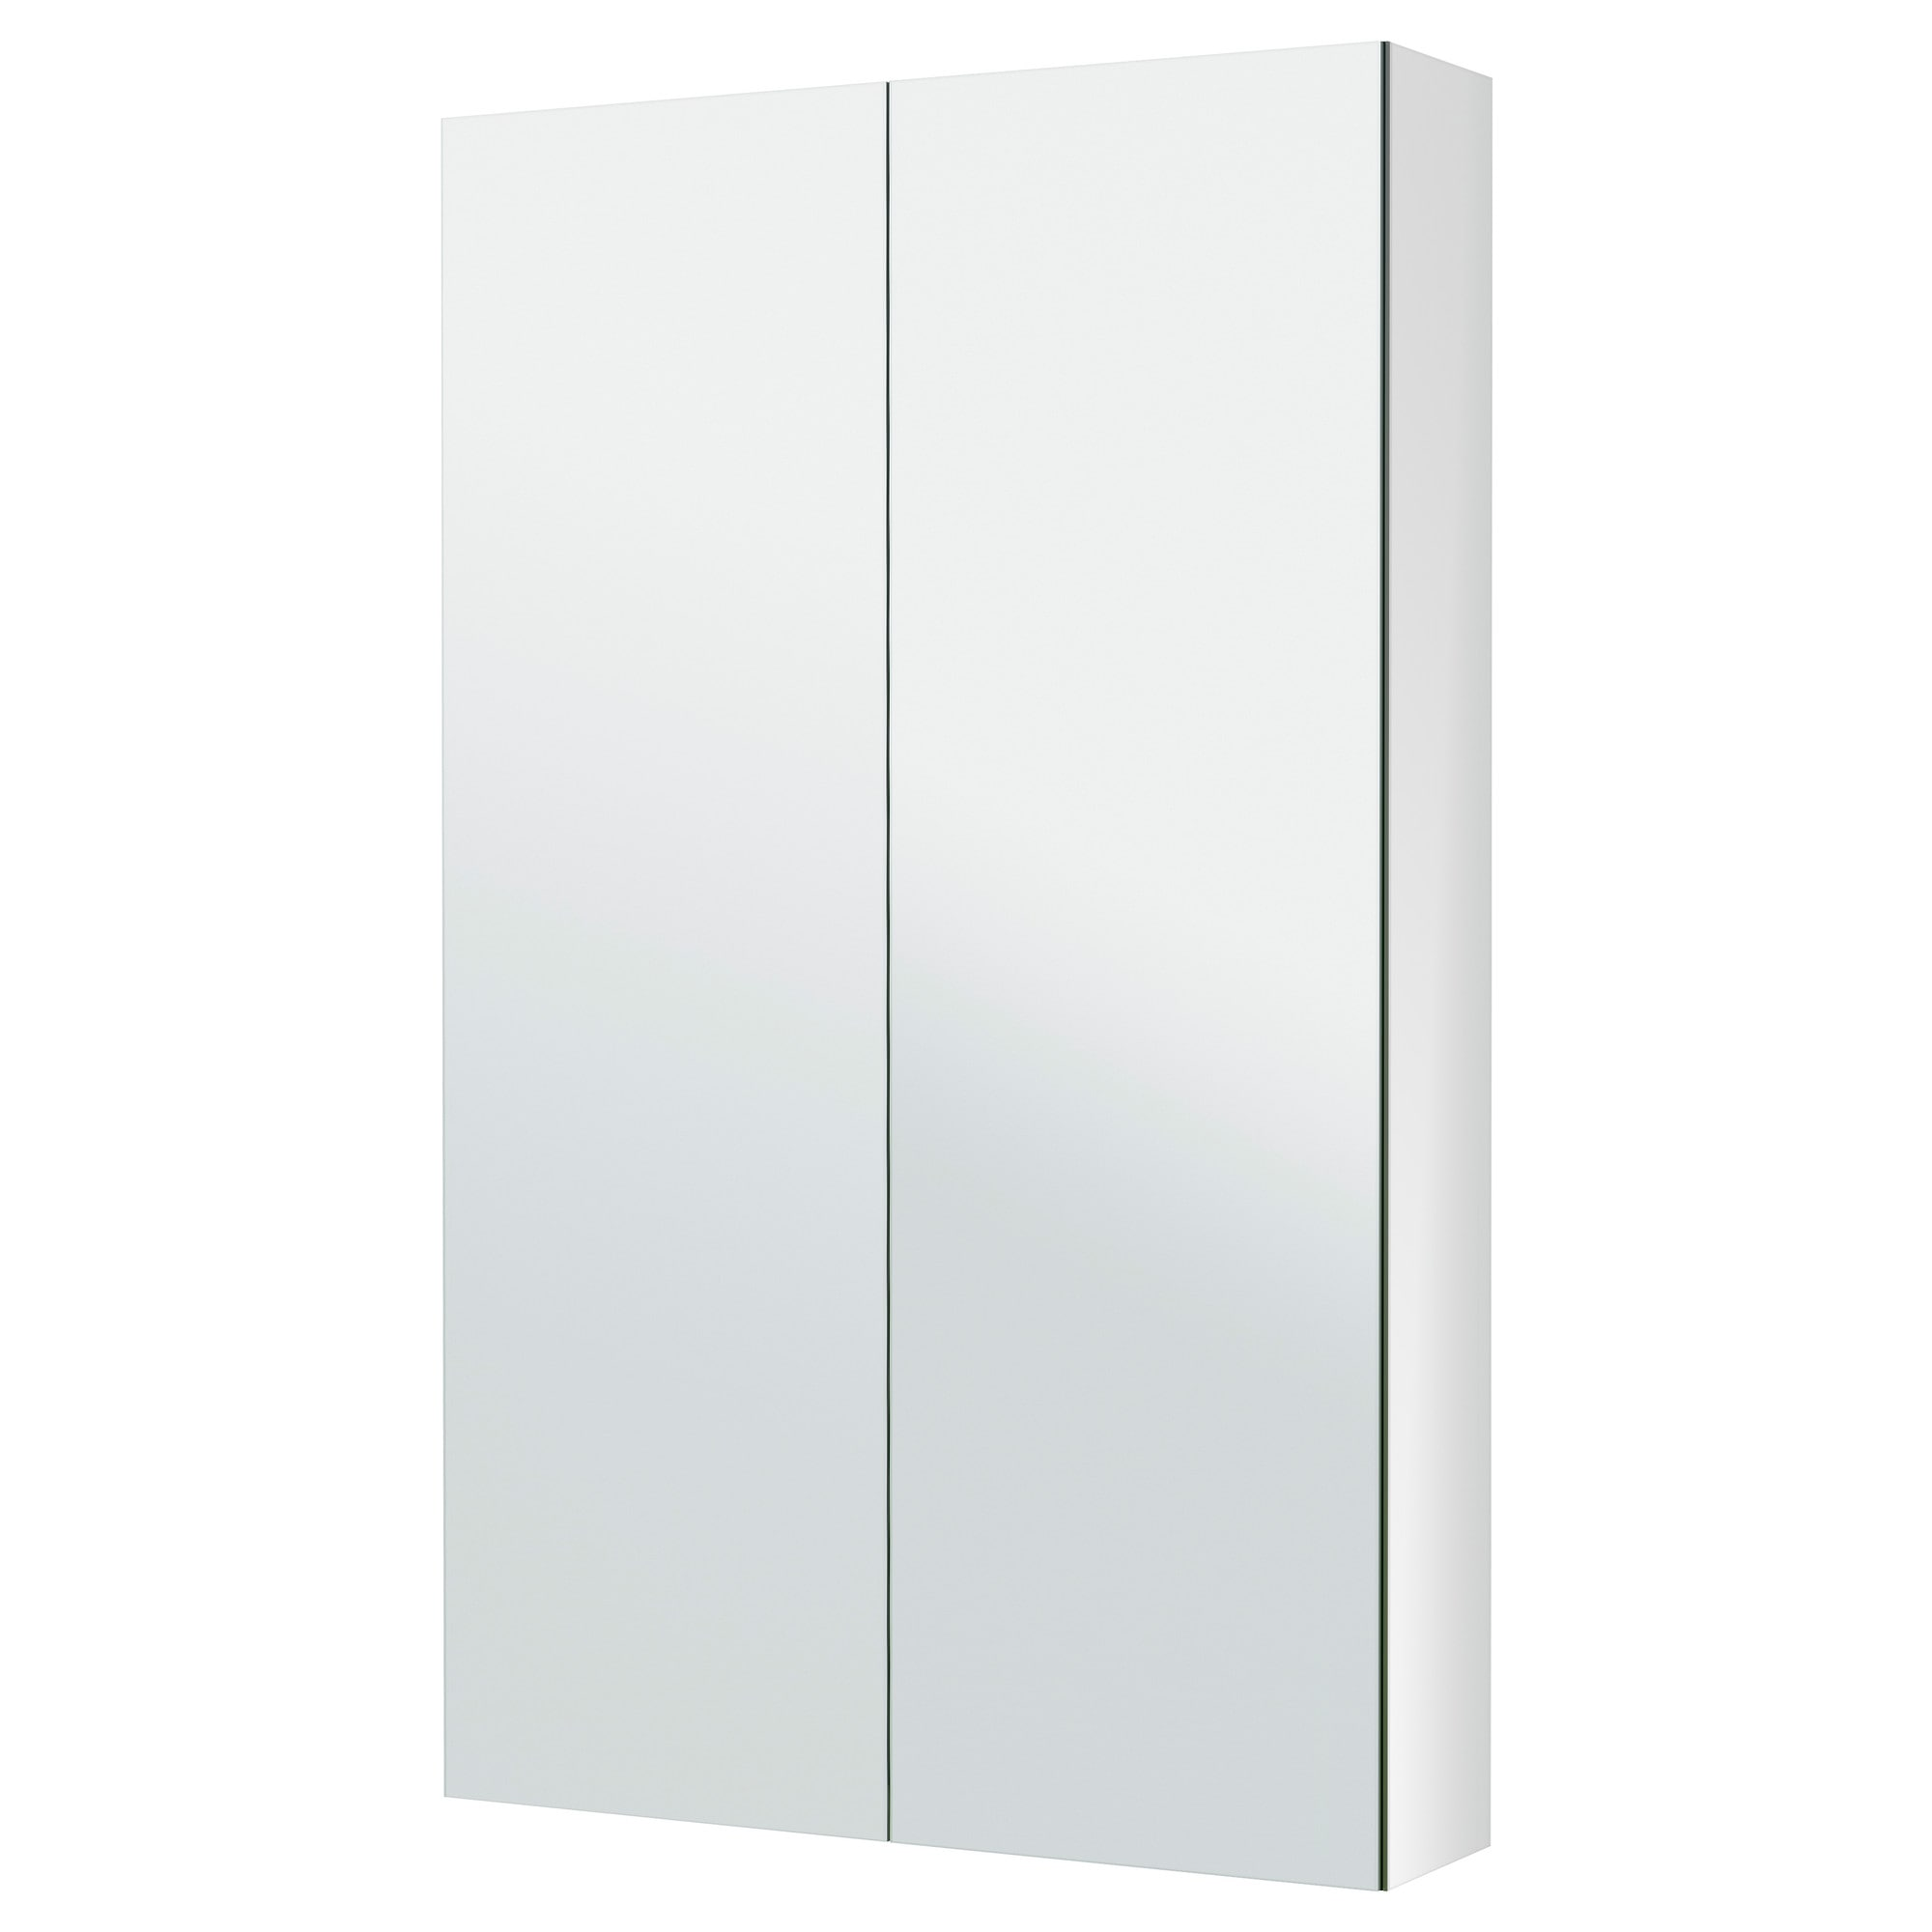 GODMORGON Mirror cabinet with 2 doors - 23 5/8x5 1/2x37 3/4 \